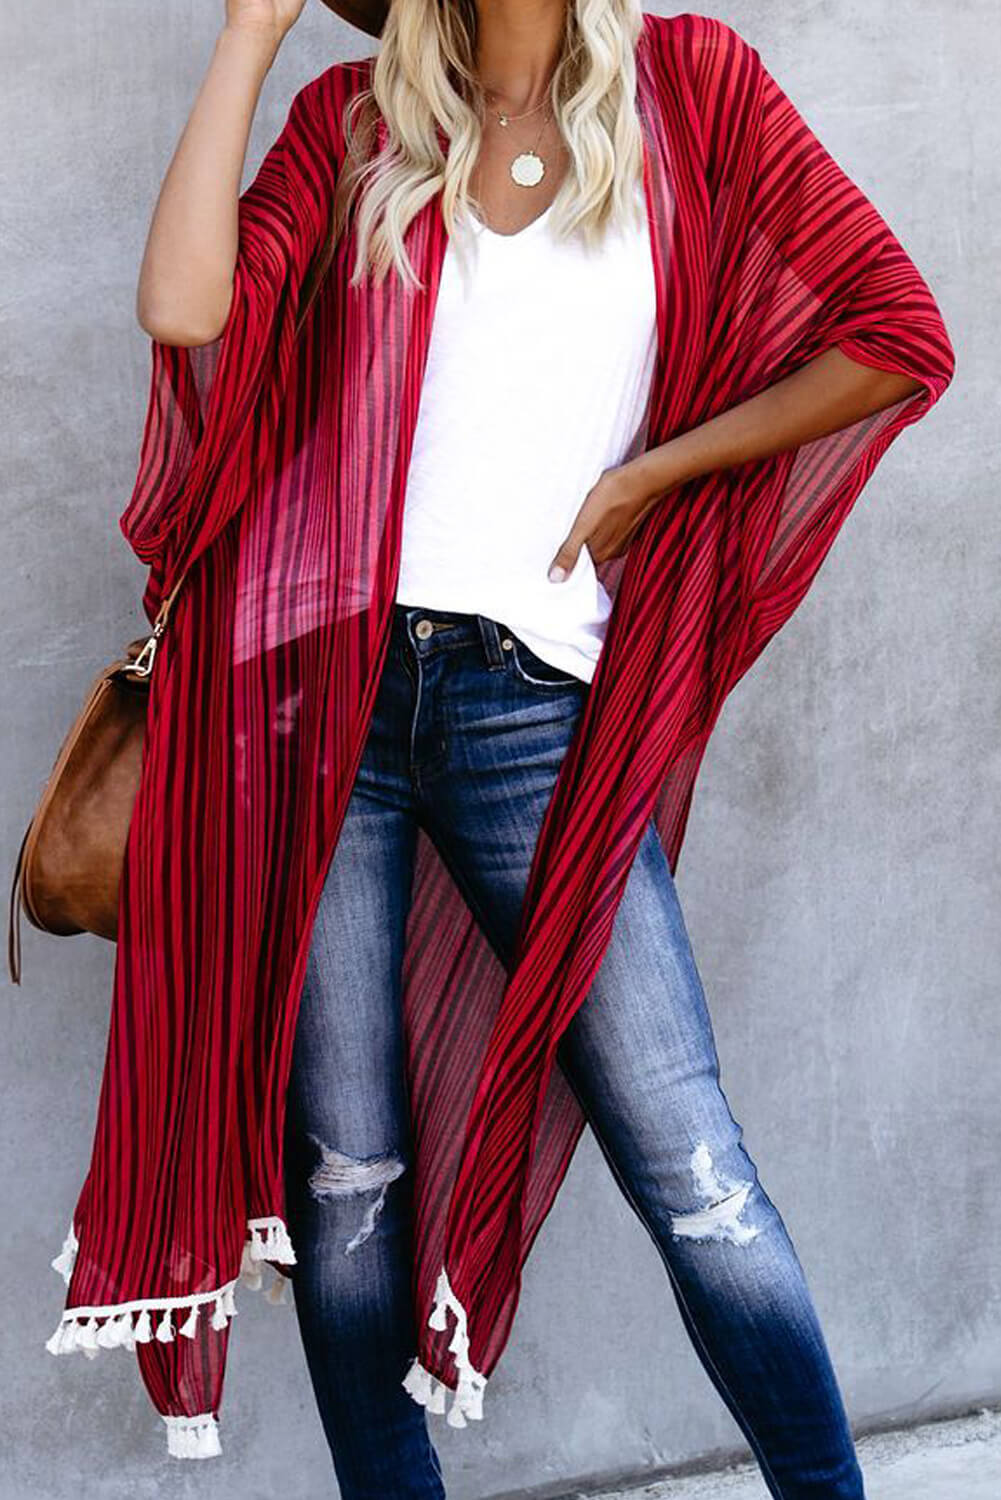 Red Striped Tassel Kimono Beach Dresses Discount Designer Fashion Clothes Shoes Bags Women Men Kids Children Black Owned Business